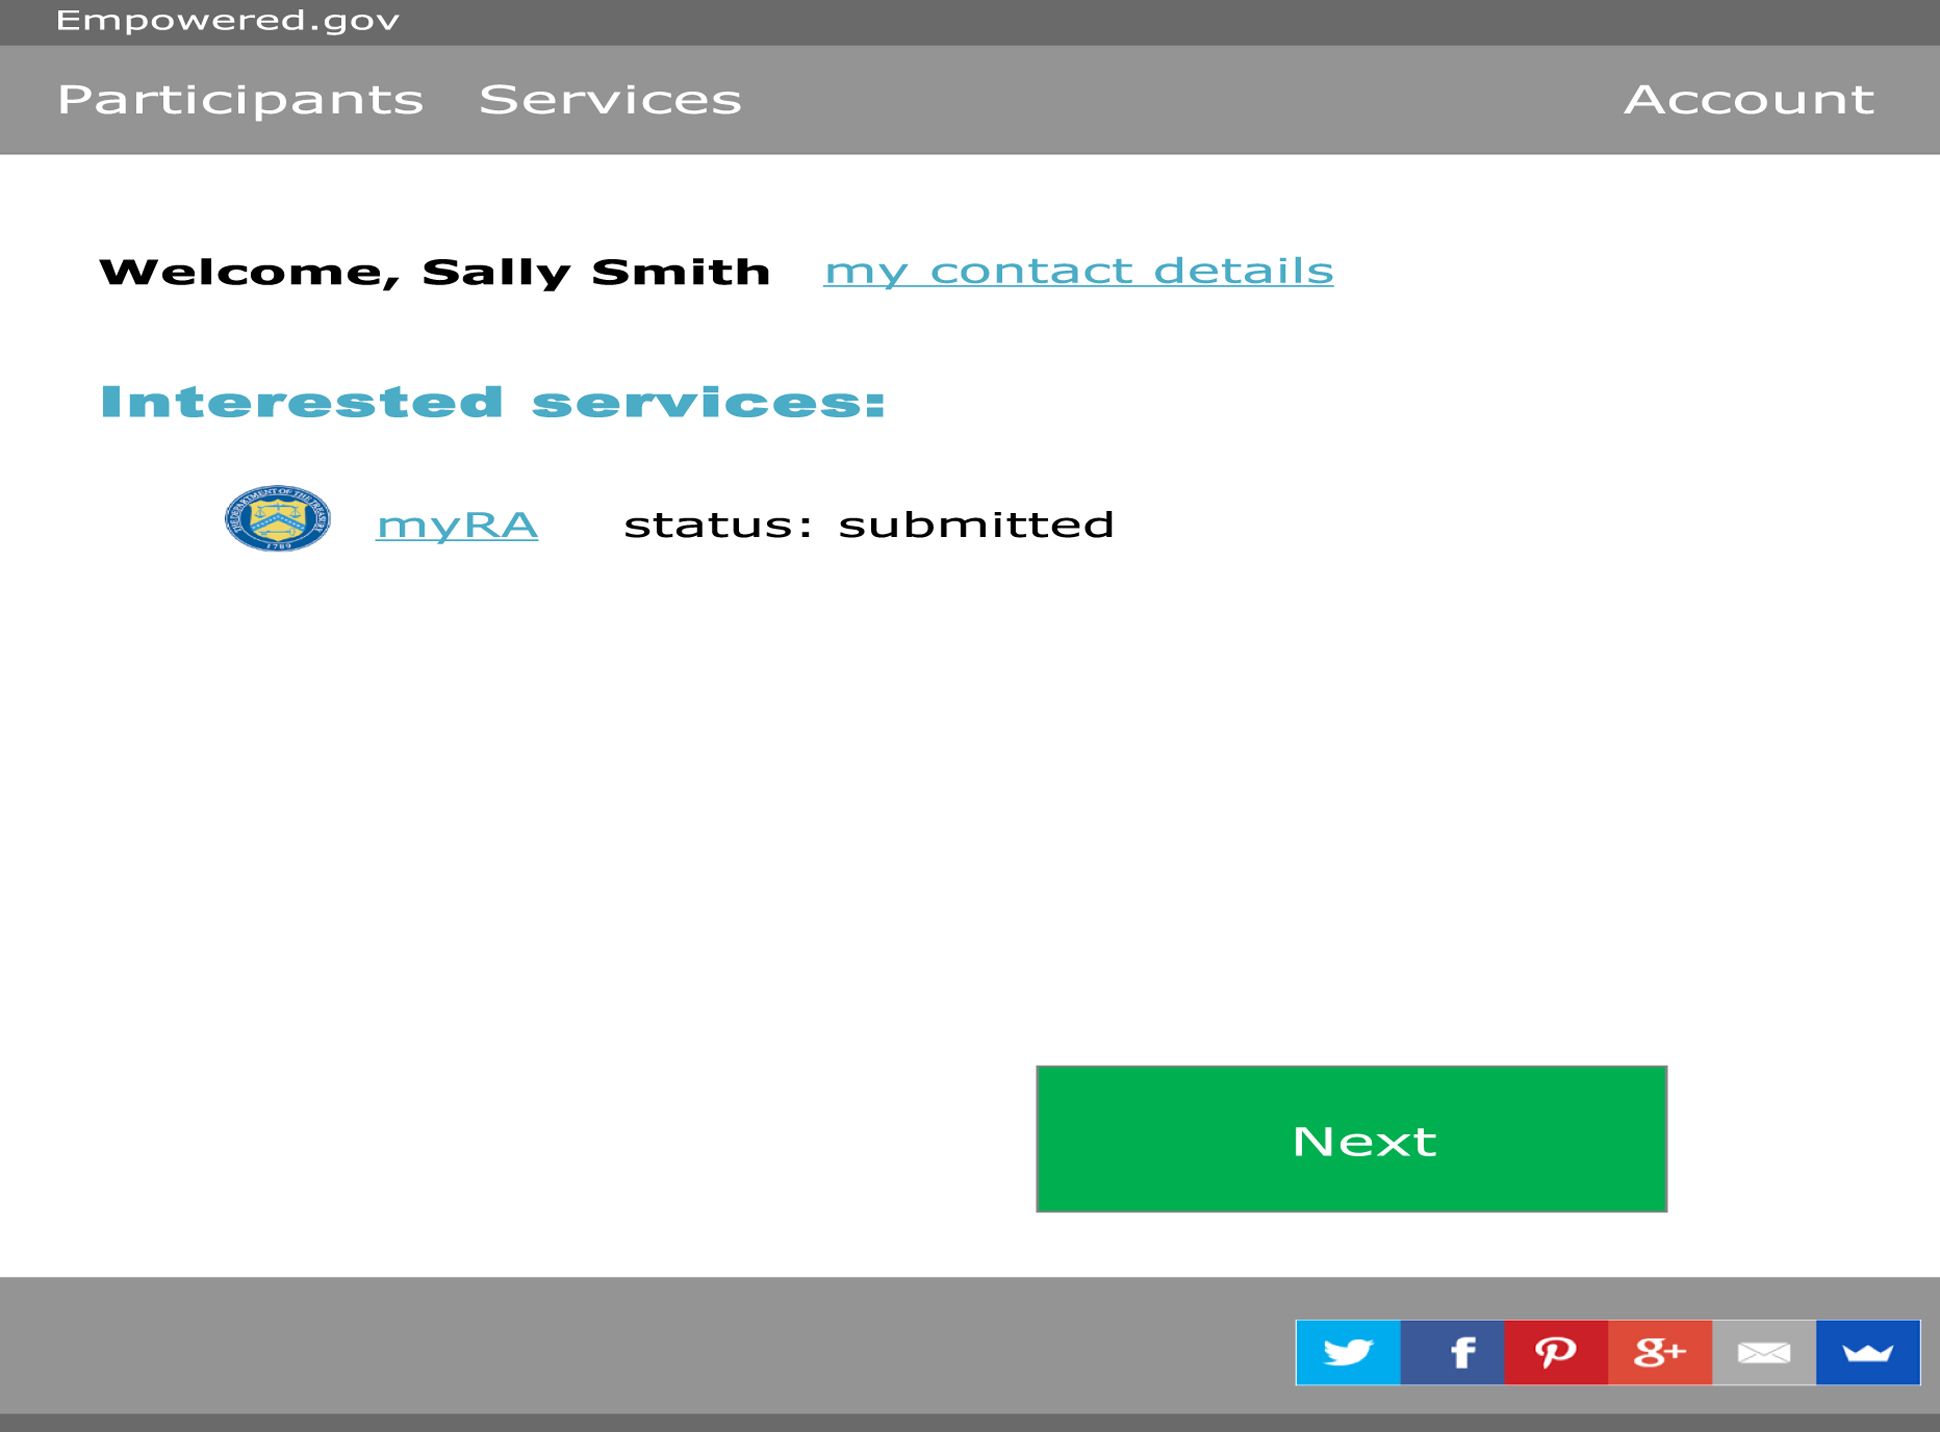 A page from a tax design challenge submission. A welcome screen for Sally Smith. This user has indicated interest in myRA and the status is listed as submitted.